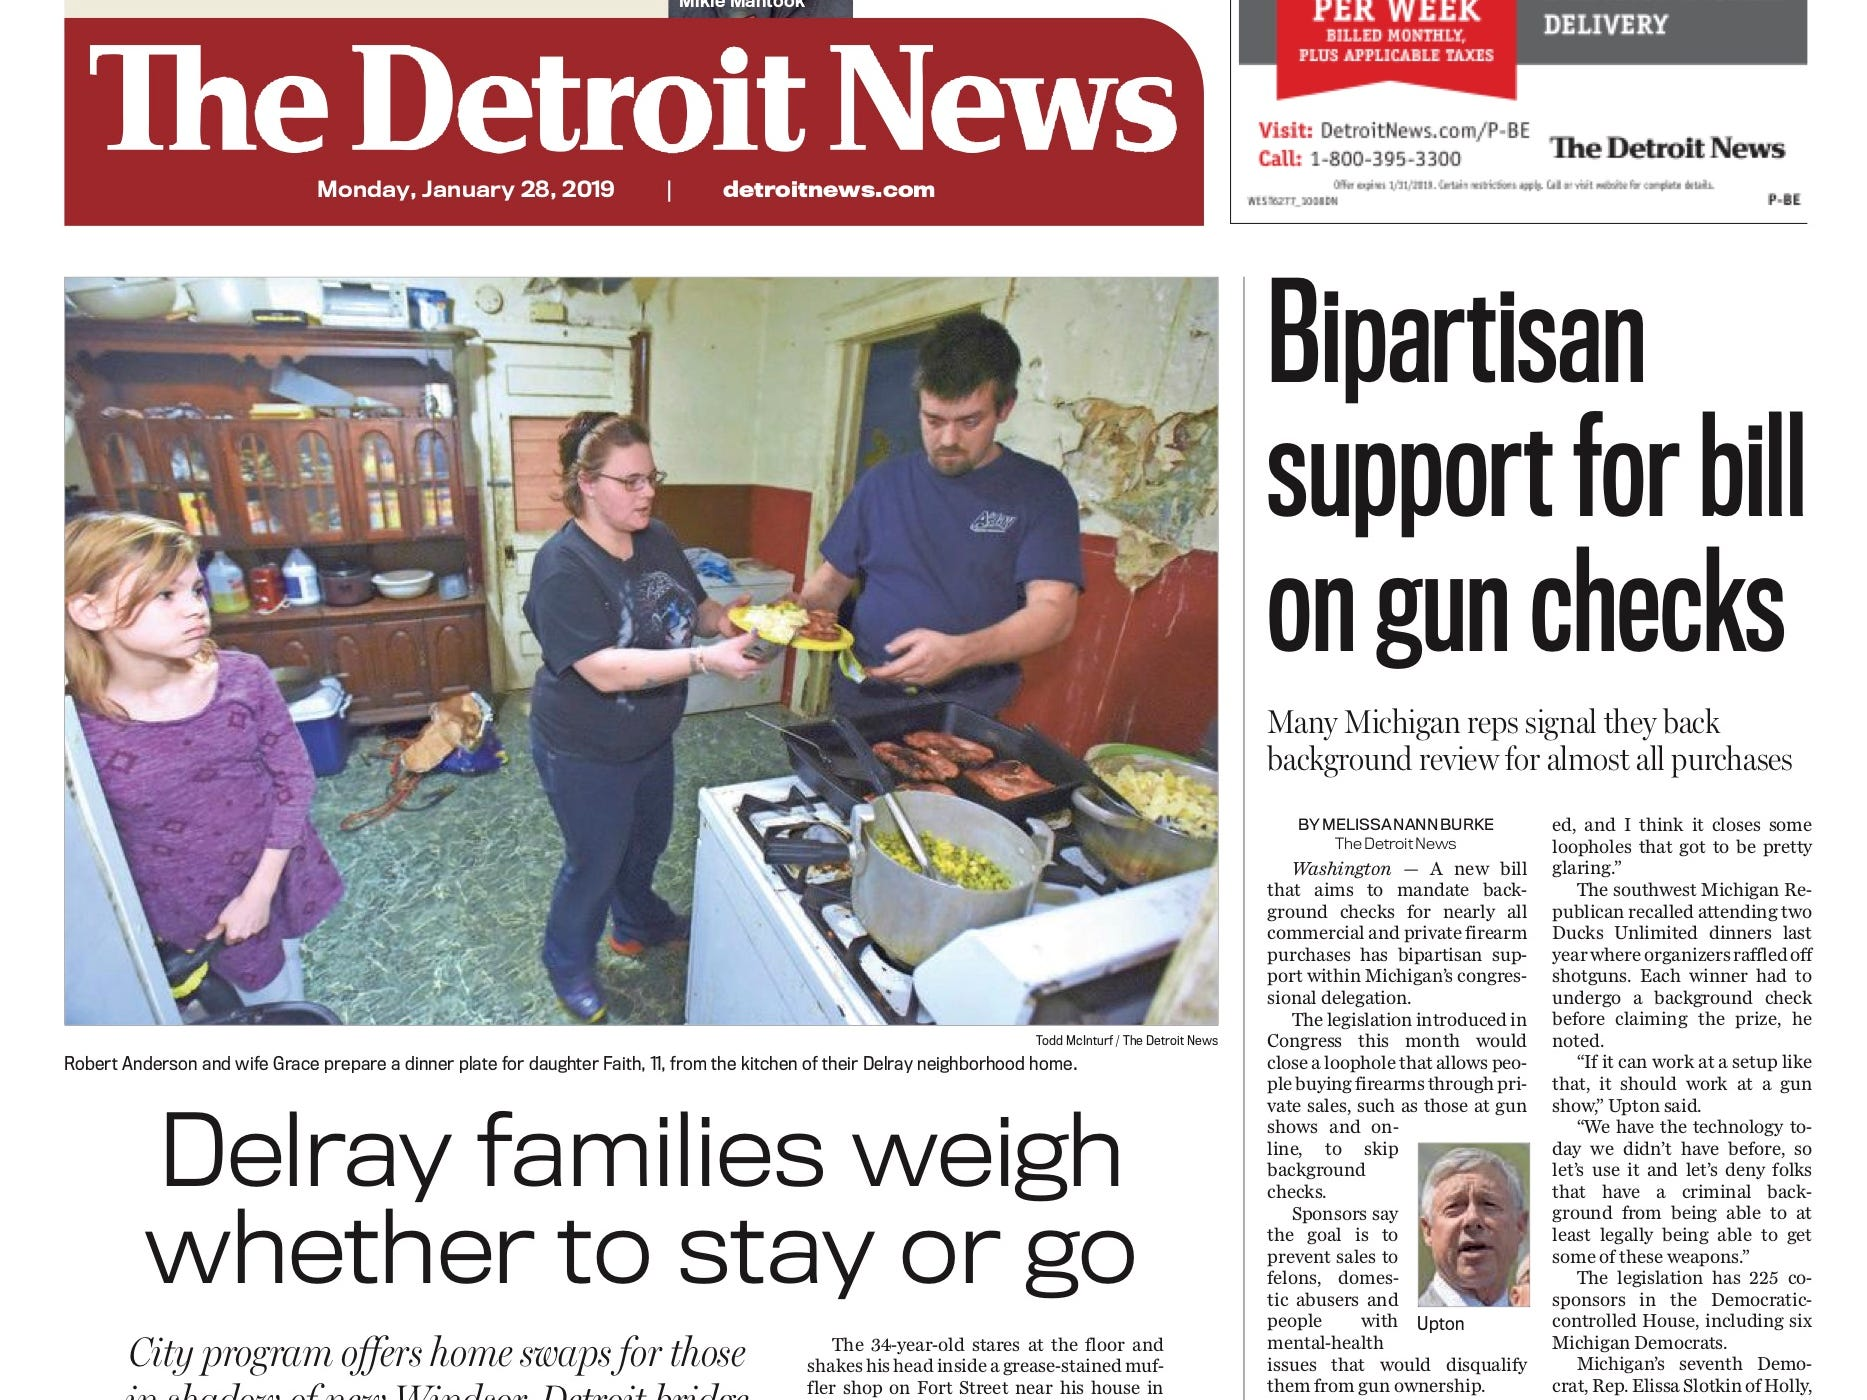 The front page of the Detroit News on January 28, 2019.